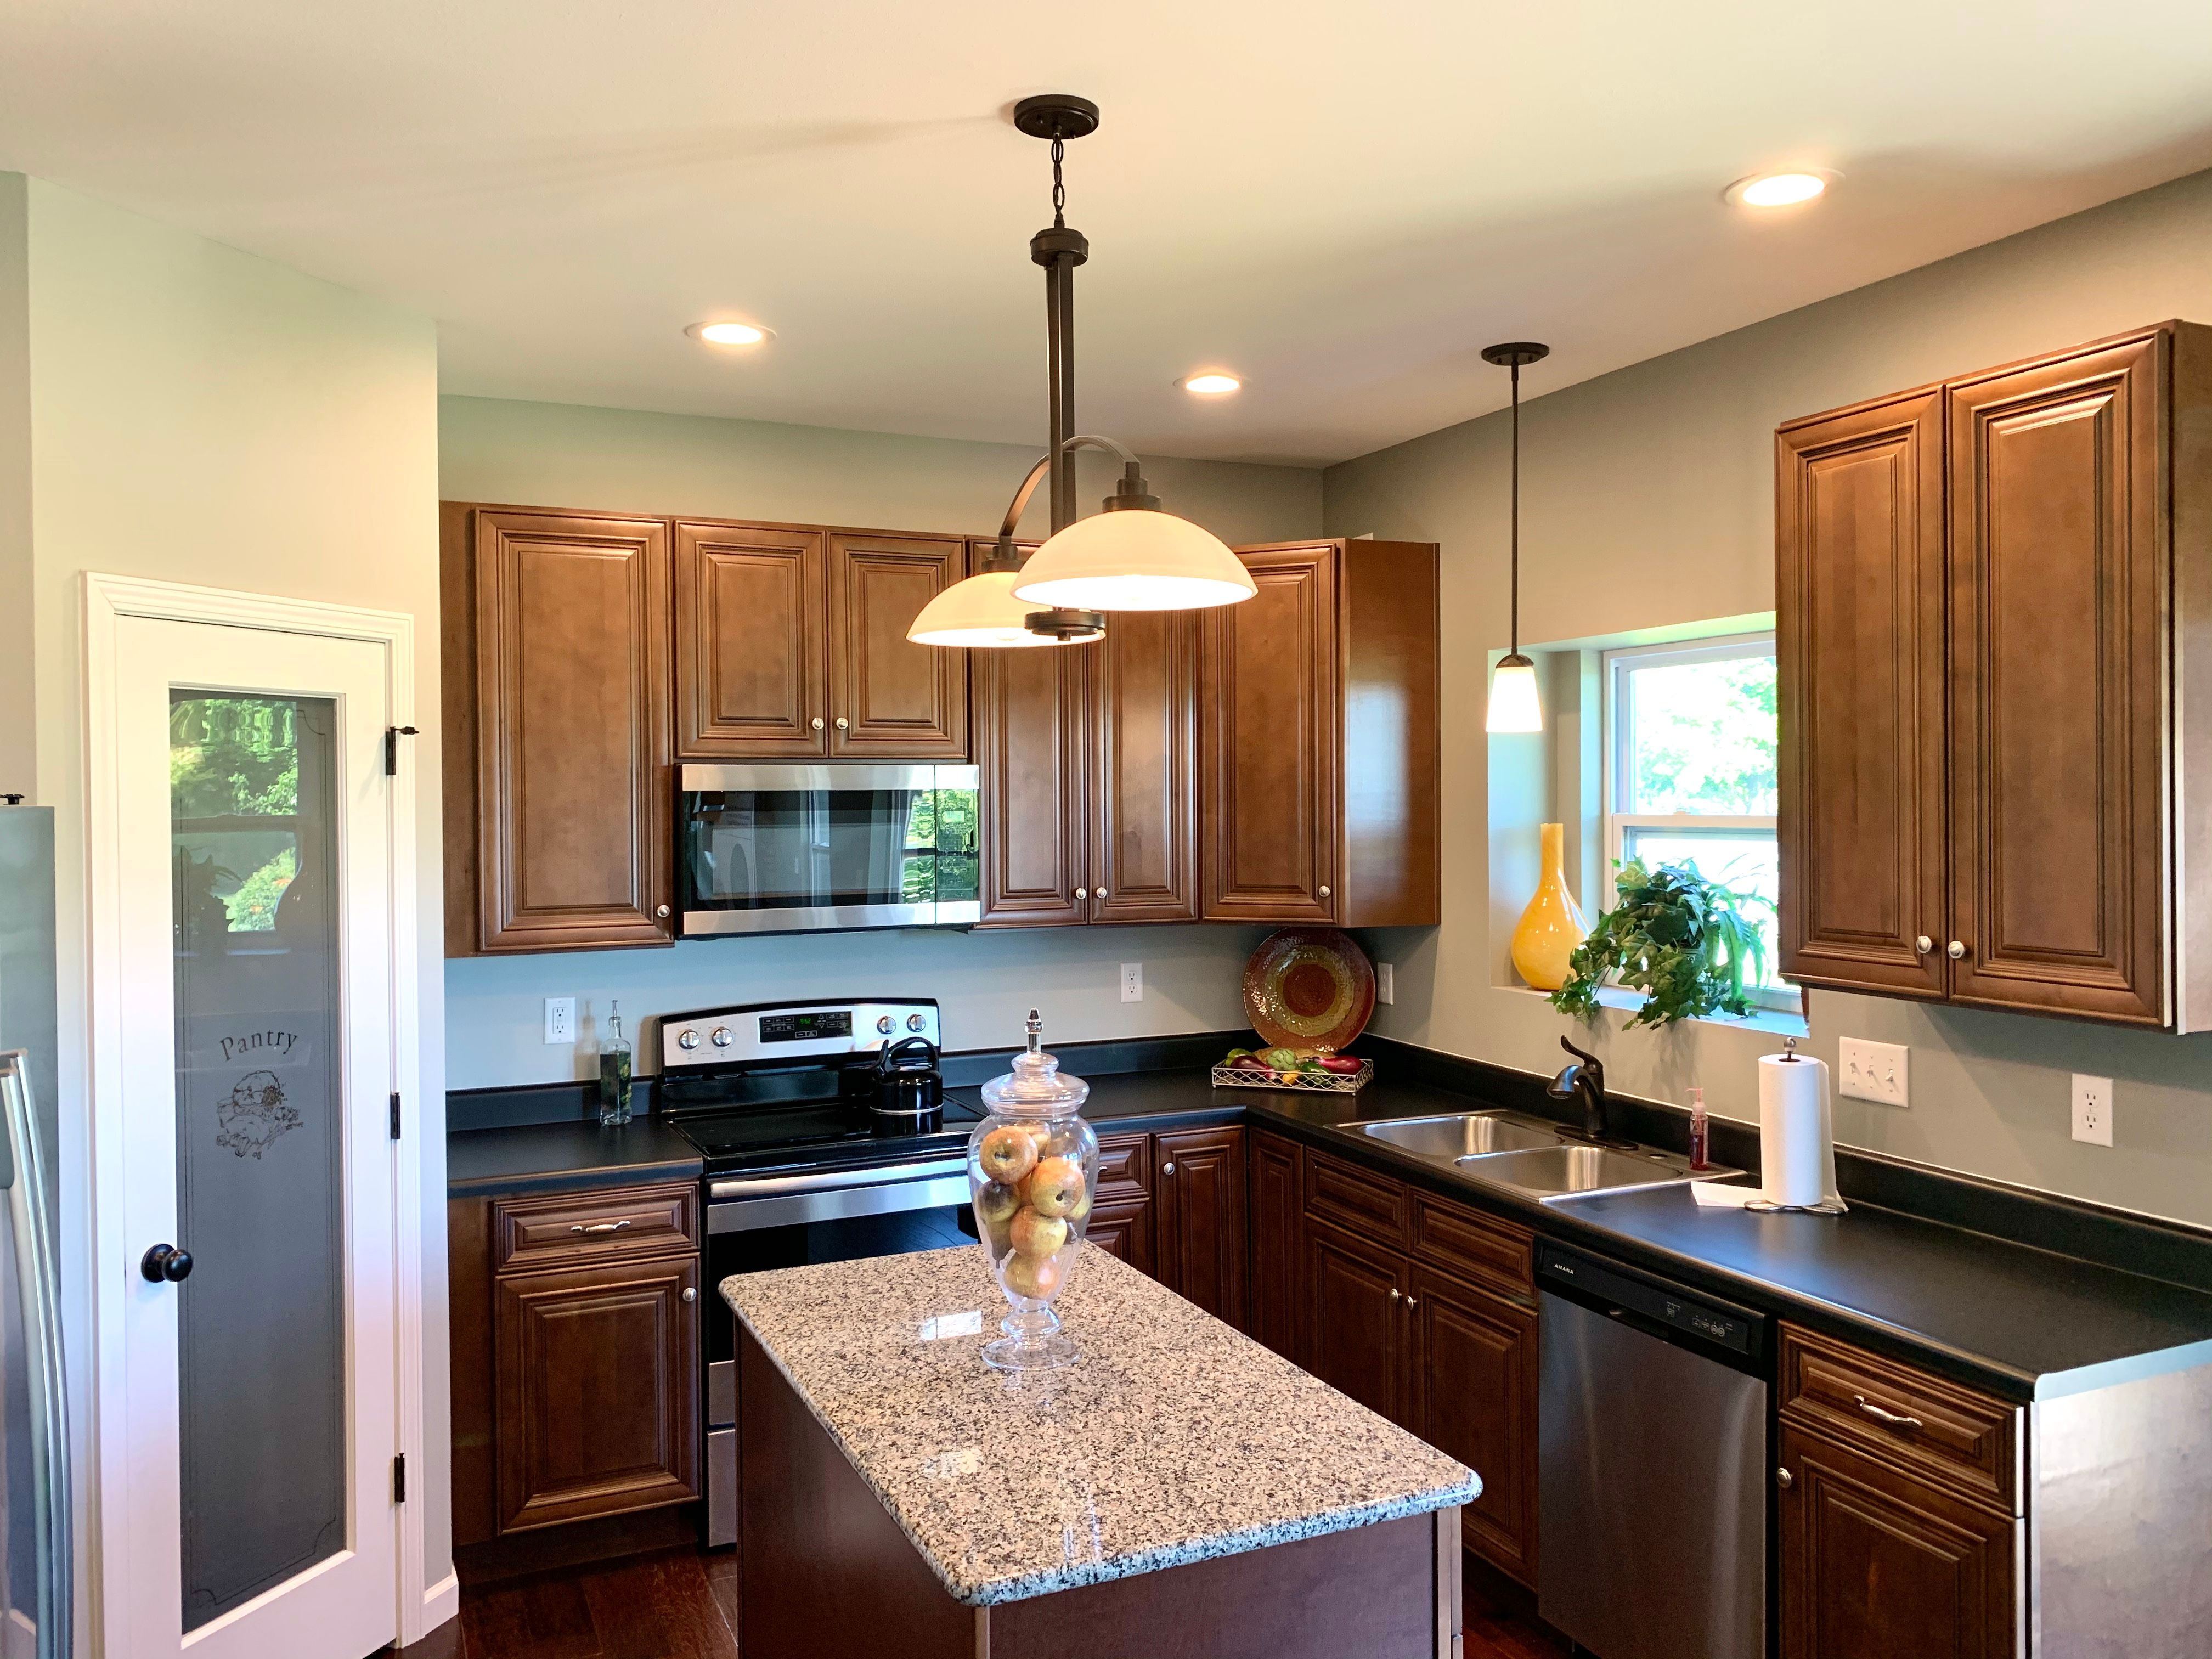 Kitchen featured in the Saffron By C.A. Jones, Inc.  in St. Louis, IL